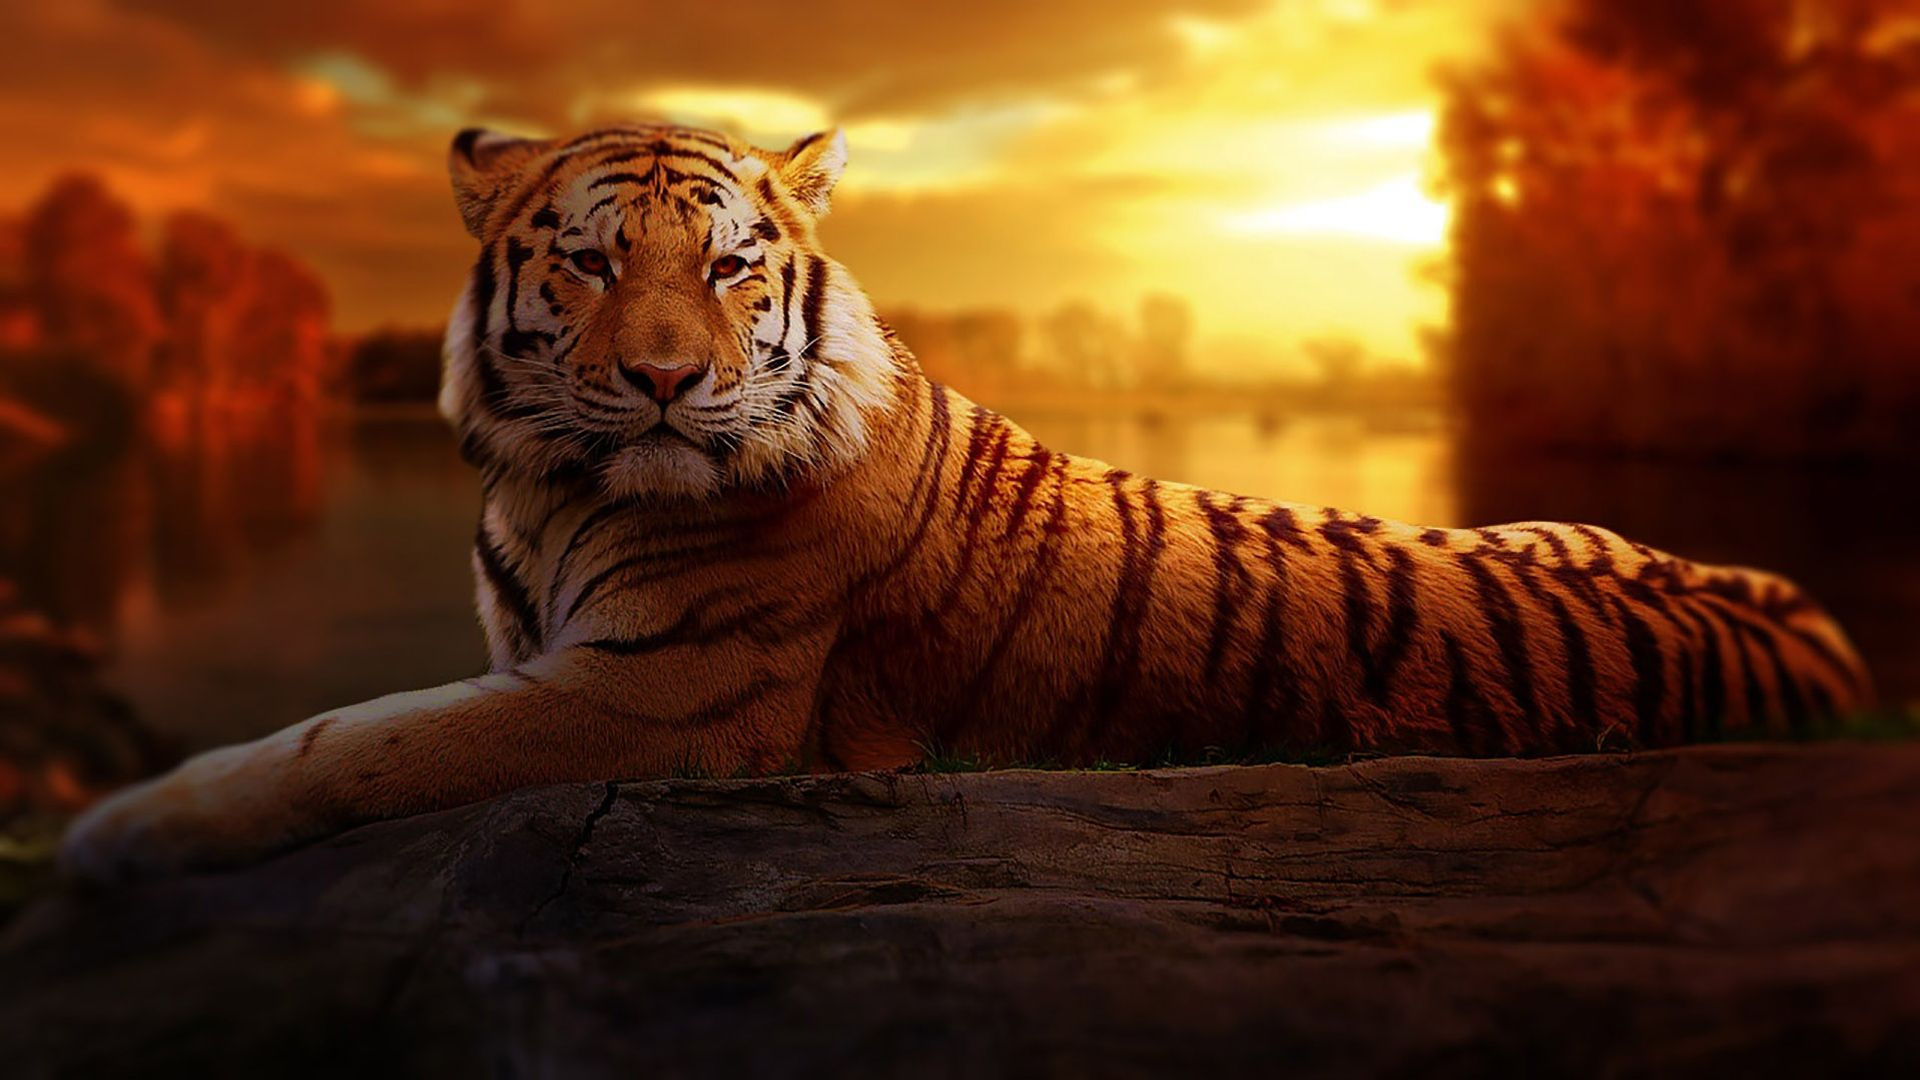 8k Tiger Uhd Wallpapers Top Free 8k Tiger Uhd Backgrounds